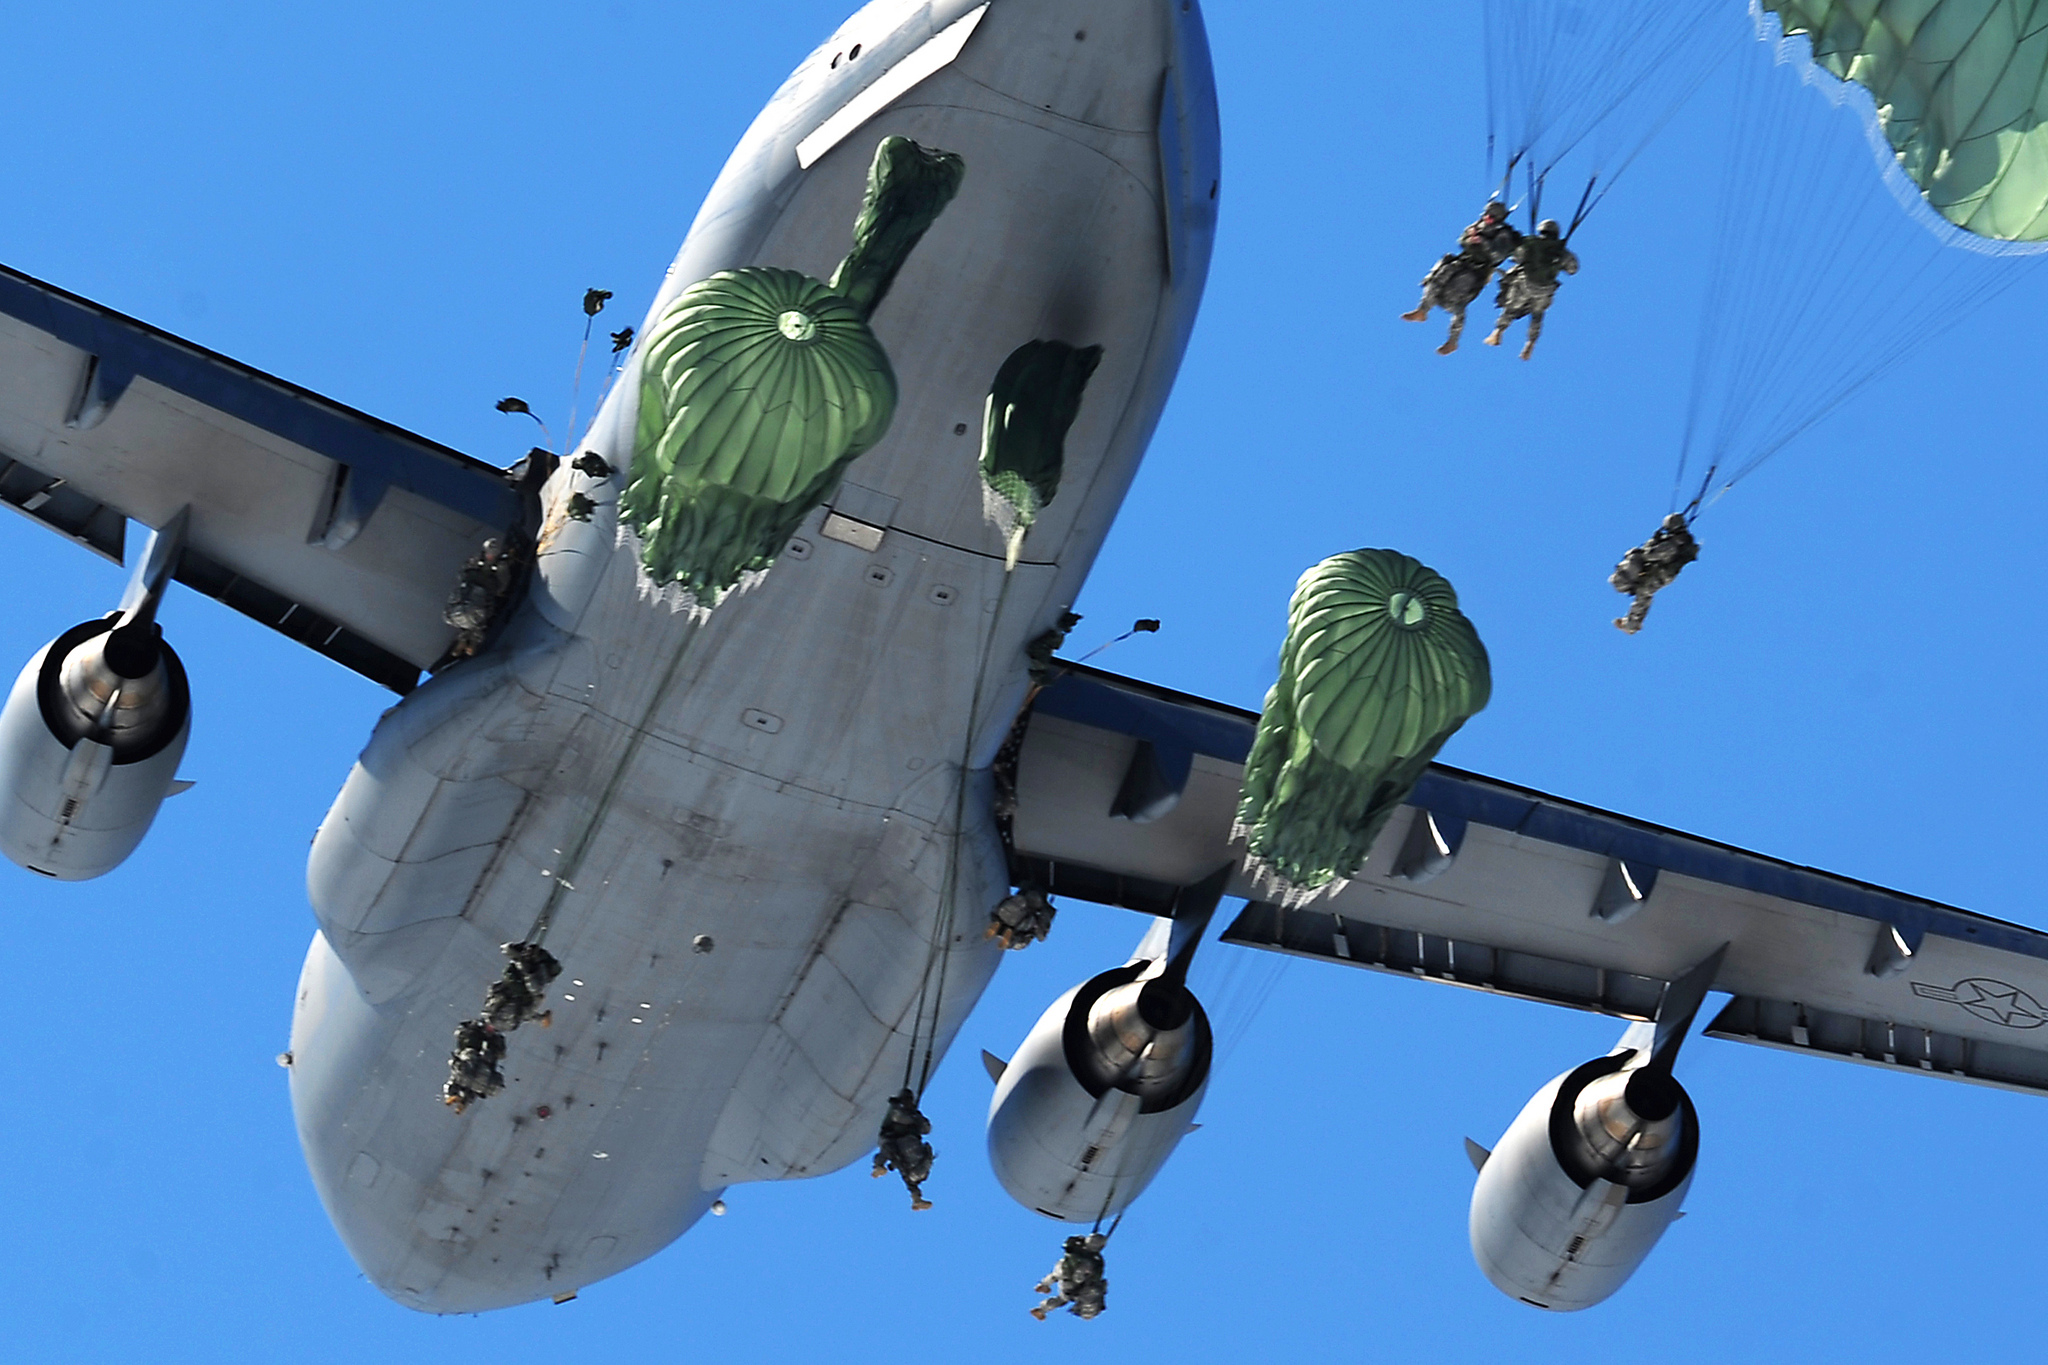 Soldiers assigned to U.S. Army Alaska's 425th Brigade Special Troops Battalion airdropped a Humvee on JBER's Malamute Drop Zone, followed by approximately 60 paratroopers from a C-17 aircraft, Wednesday, April 17, 2013. The paratroopers of the 4th Brigade Combat Team (Airborne) 25th Infantry Division recently completed post-deployment RESET, and are transitioning the brigade to assuming part of the quick reaction force mission for the Pacific theater. (U.S. Air Force photo/Justin Connaher)